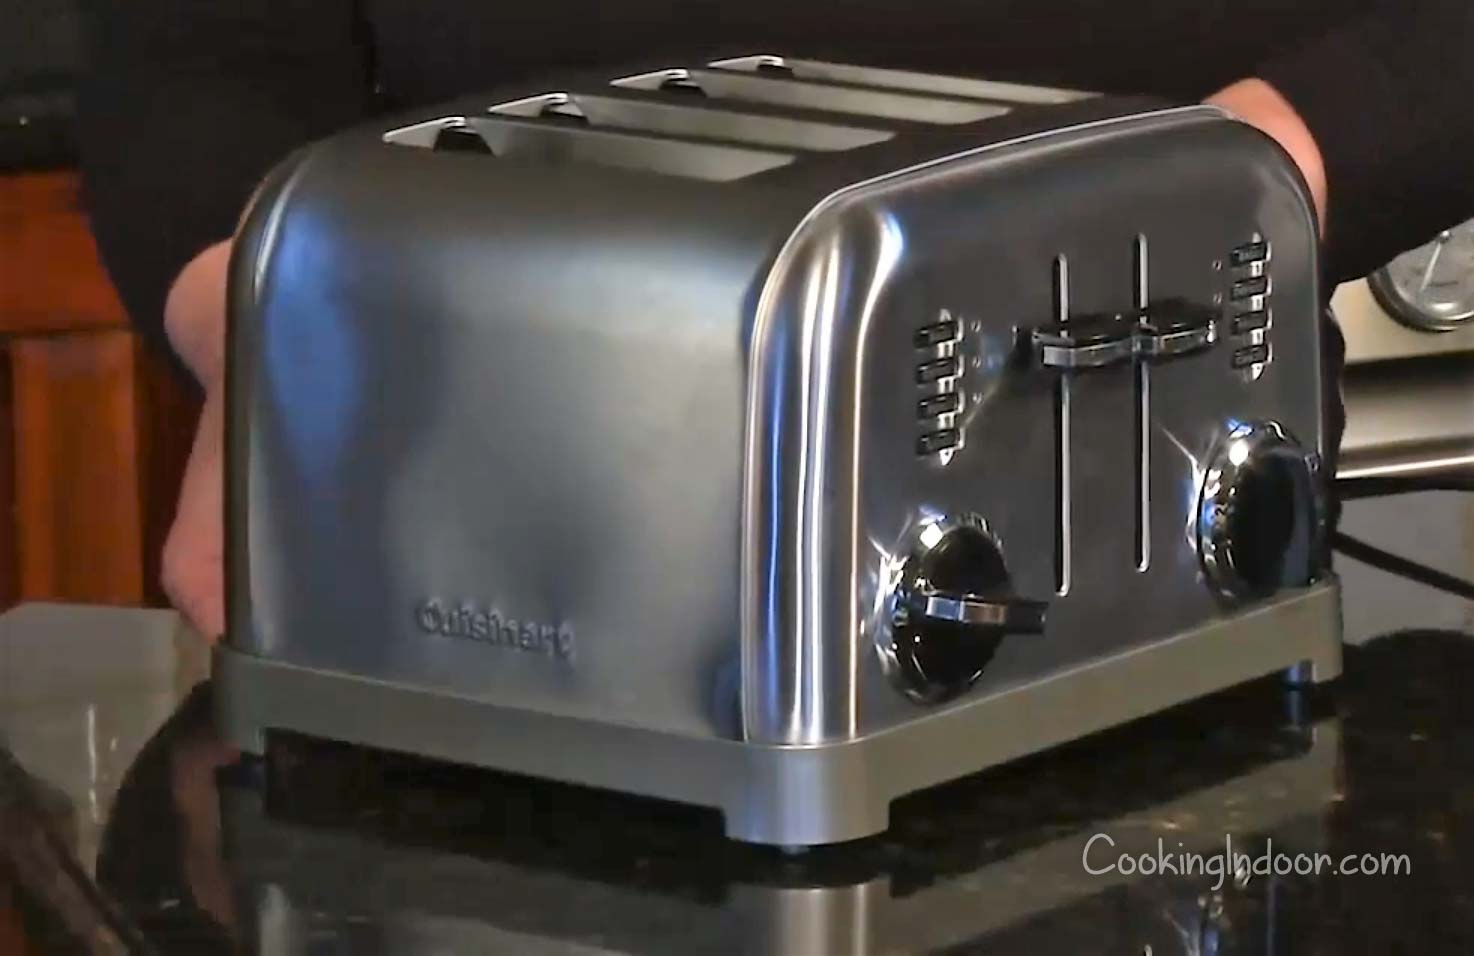 Best stainless steel toaster